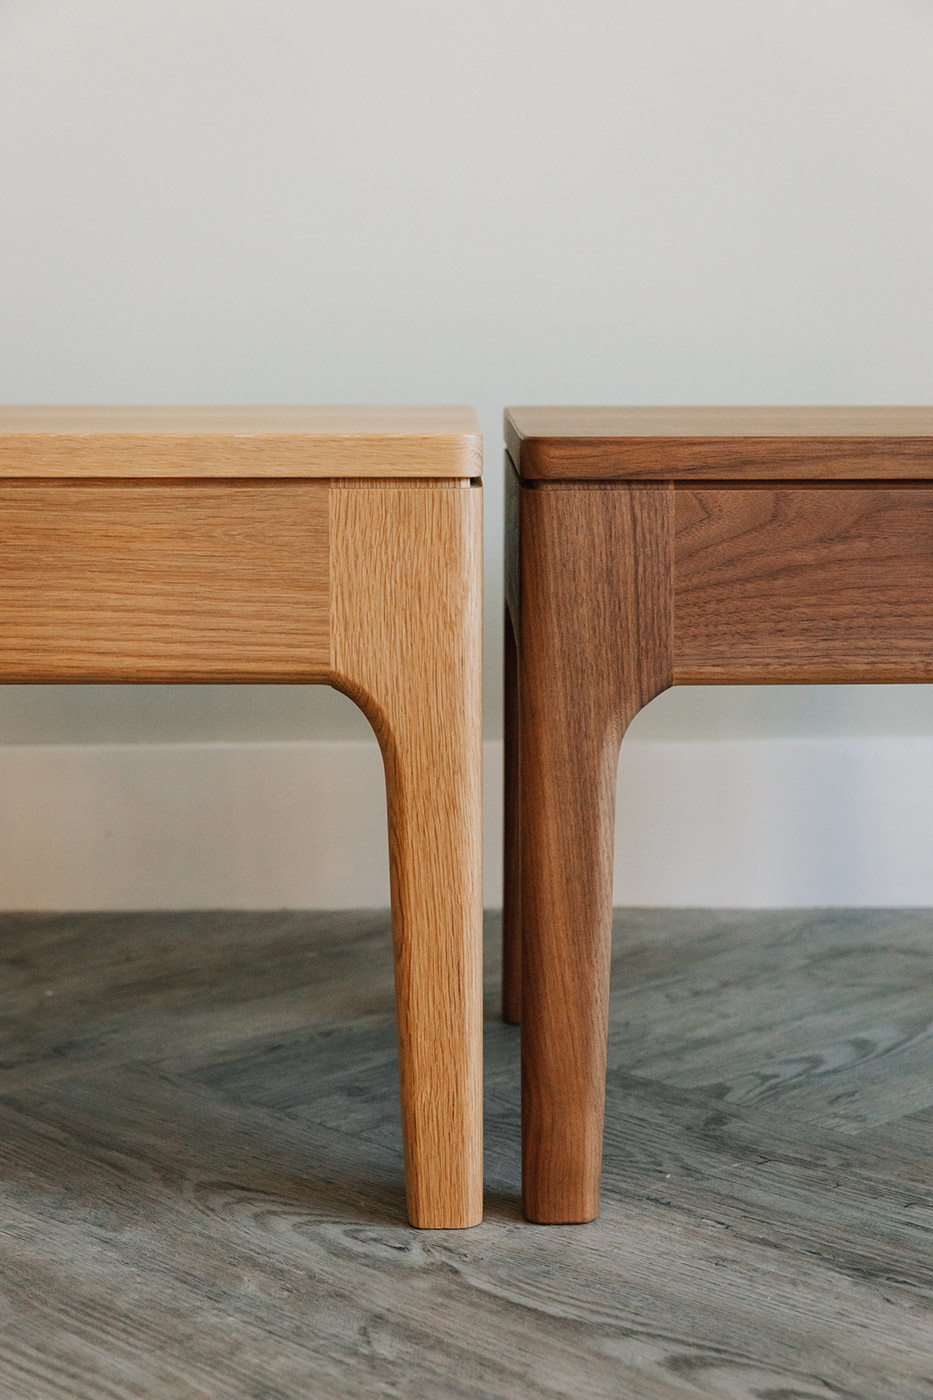 hand crafted wooden bedside tables from Natural Bed Company, available in a choice of wood